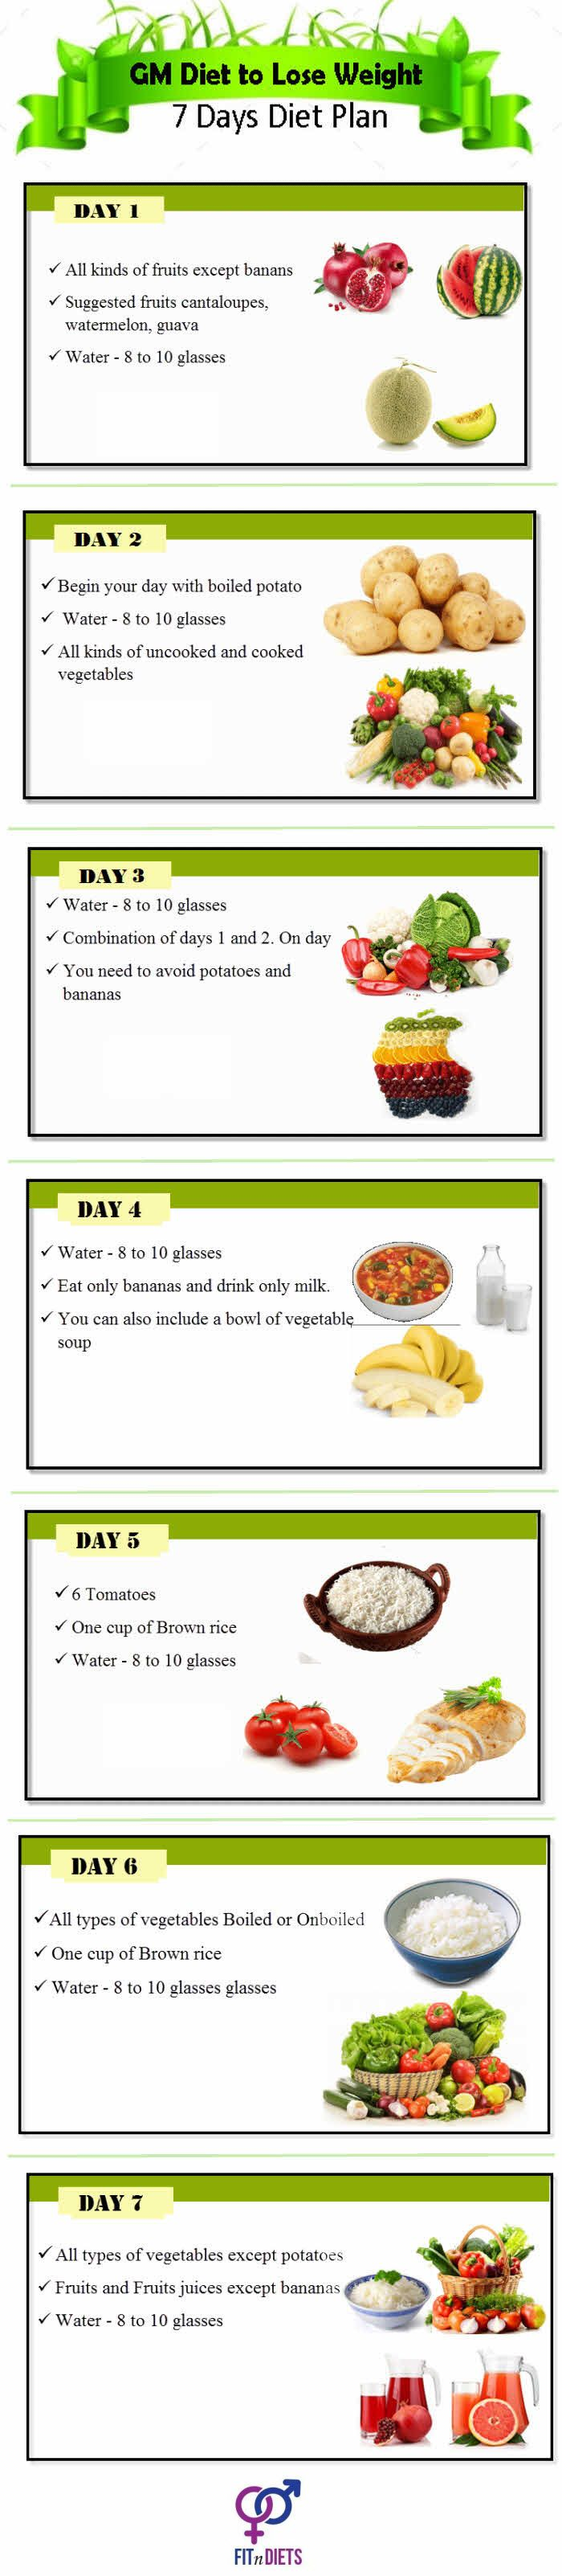 25+ best ideas about Gm diet on Pinterest | Gm diet plans ...